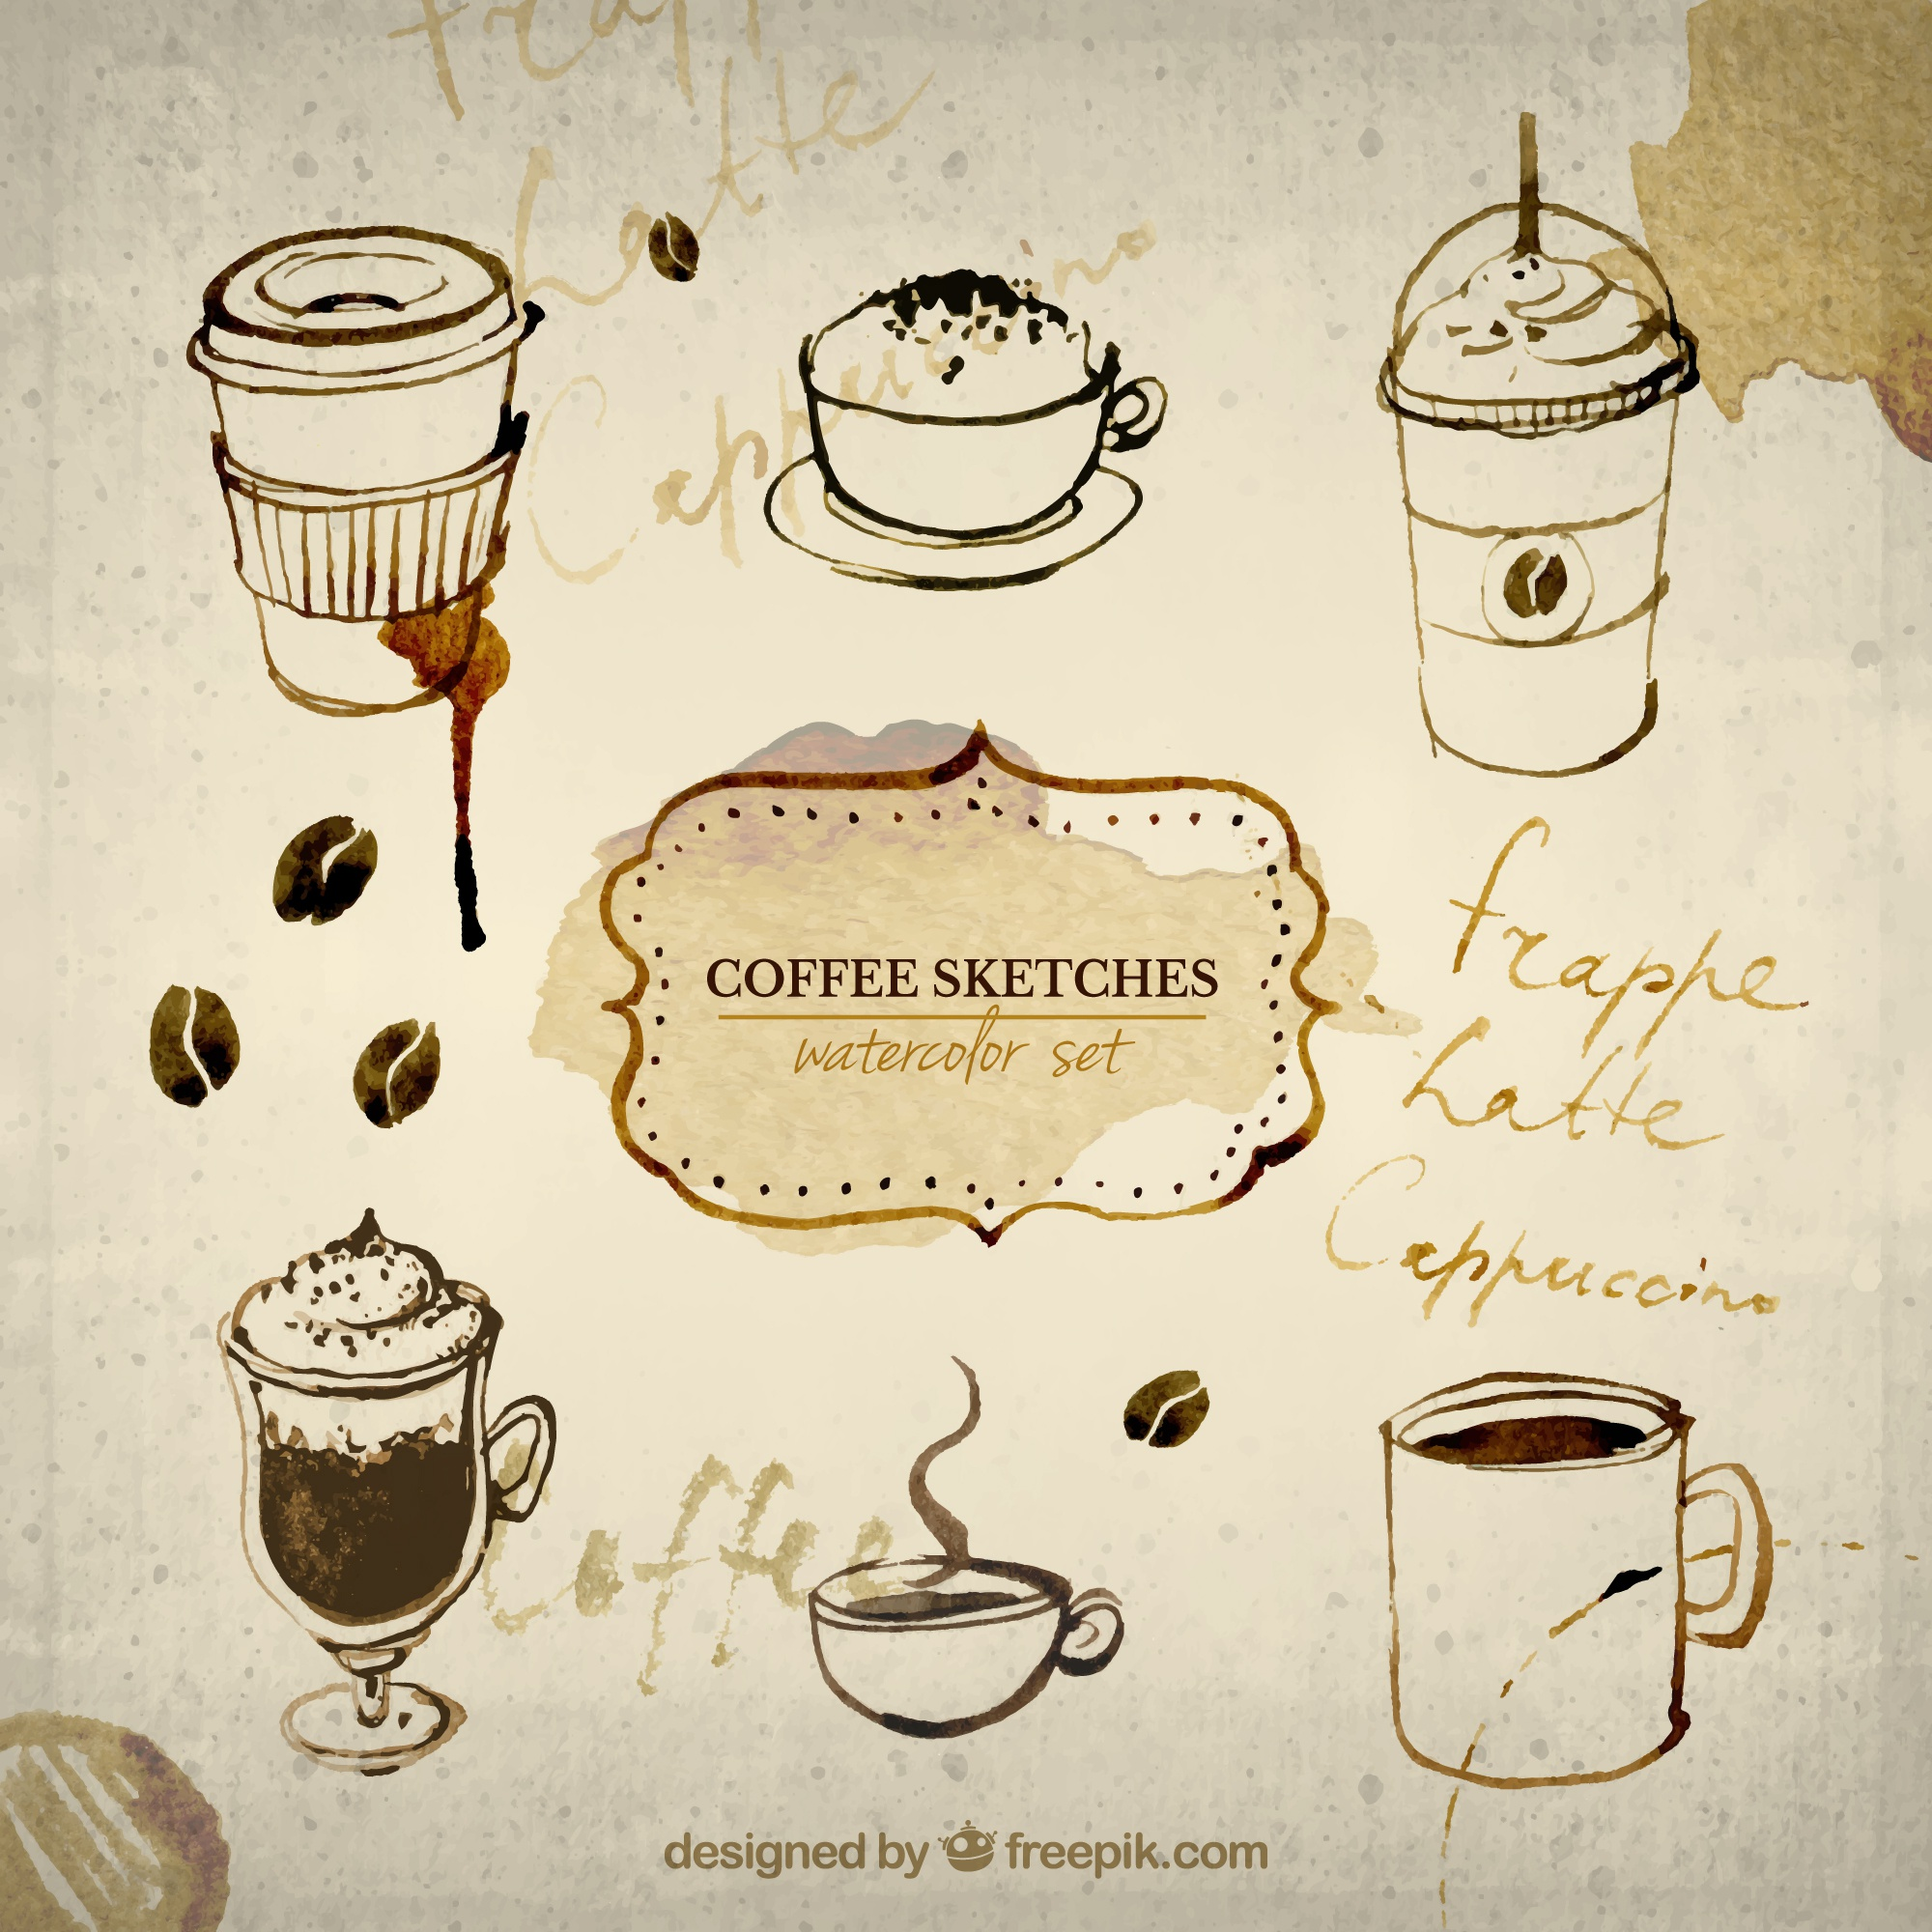 Hand painted coffee sketches